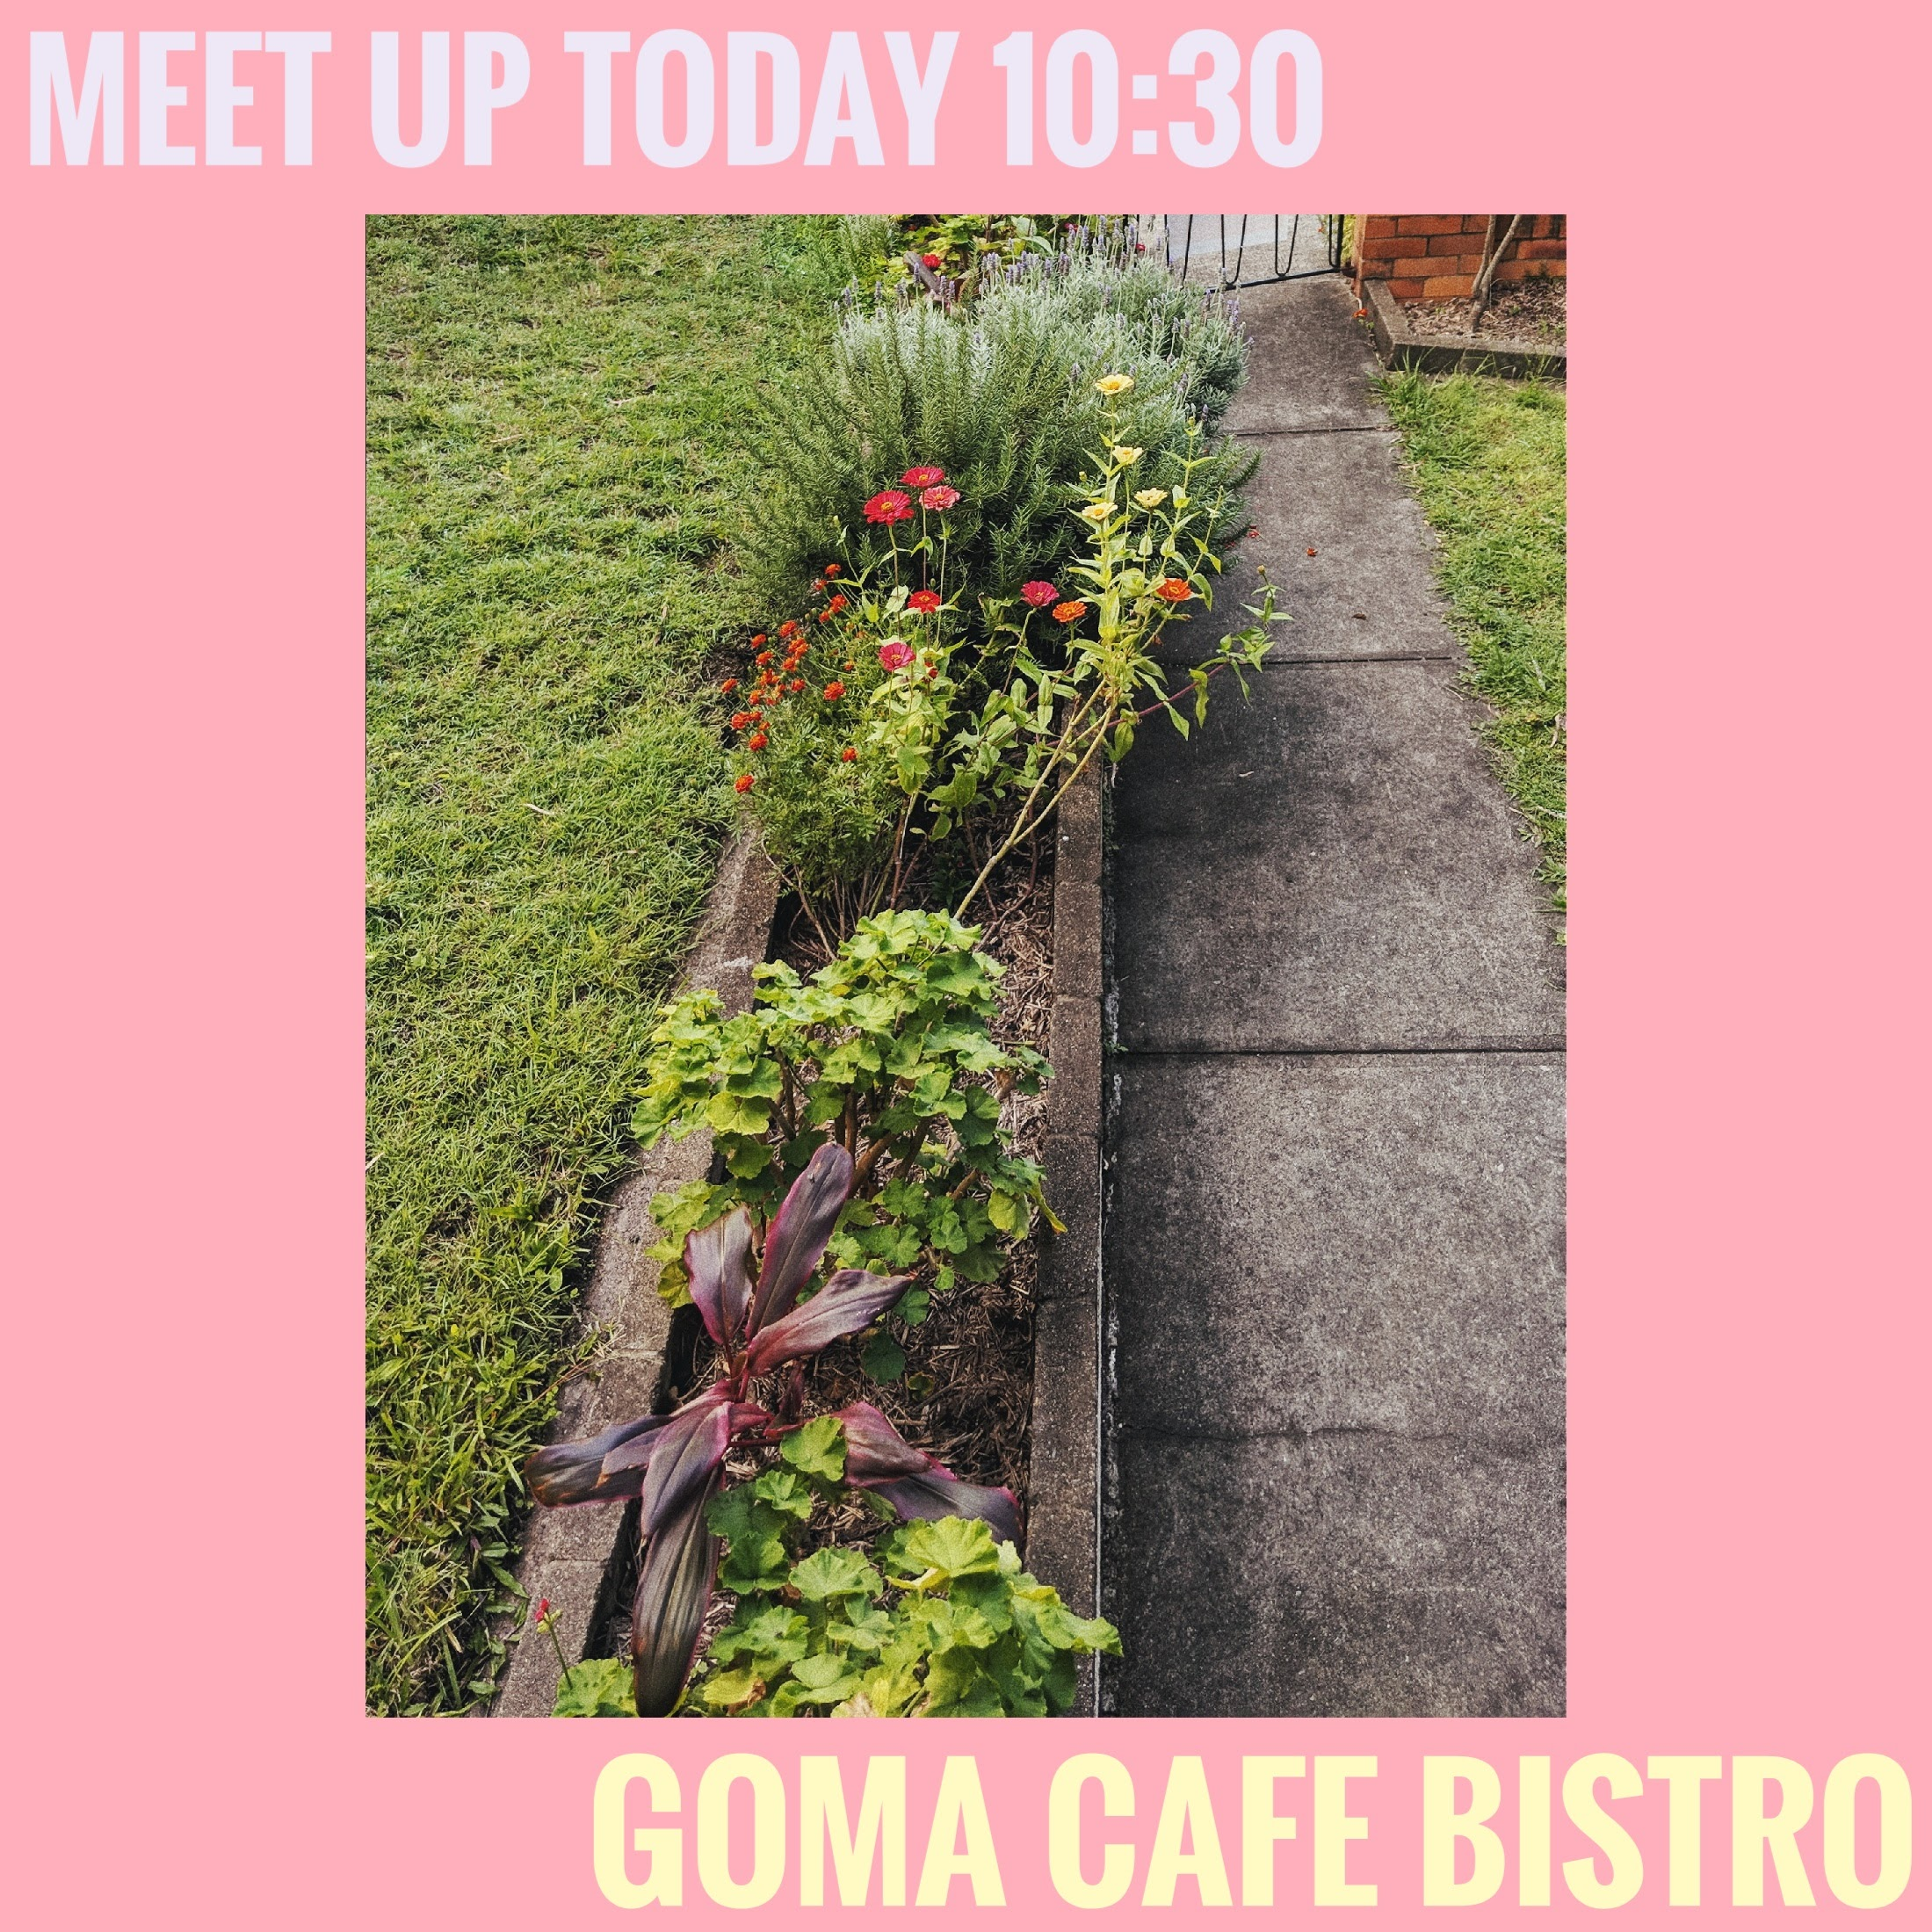 MEET UP - CAFE BISTRO 10:30 AMSunday 14th of AprilGallery of Modern Art, Stanley Pl, South Brisbane QLD 4101GRAB A COFFEE AND EVEN SOME BREAKFAST/BRUNCH IF YOUR UP FOR ITAS ALWAYS ALL WELCOME.